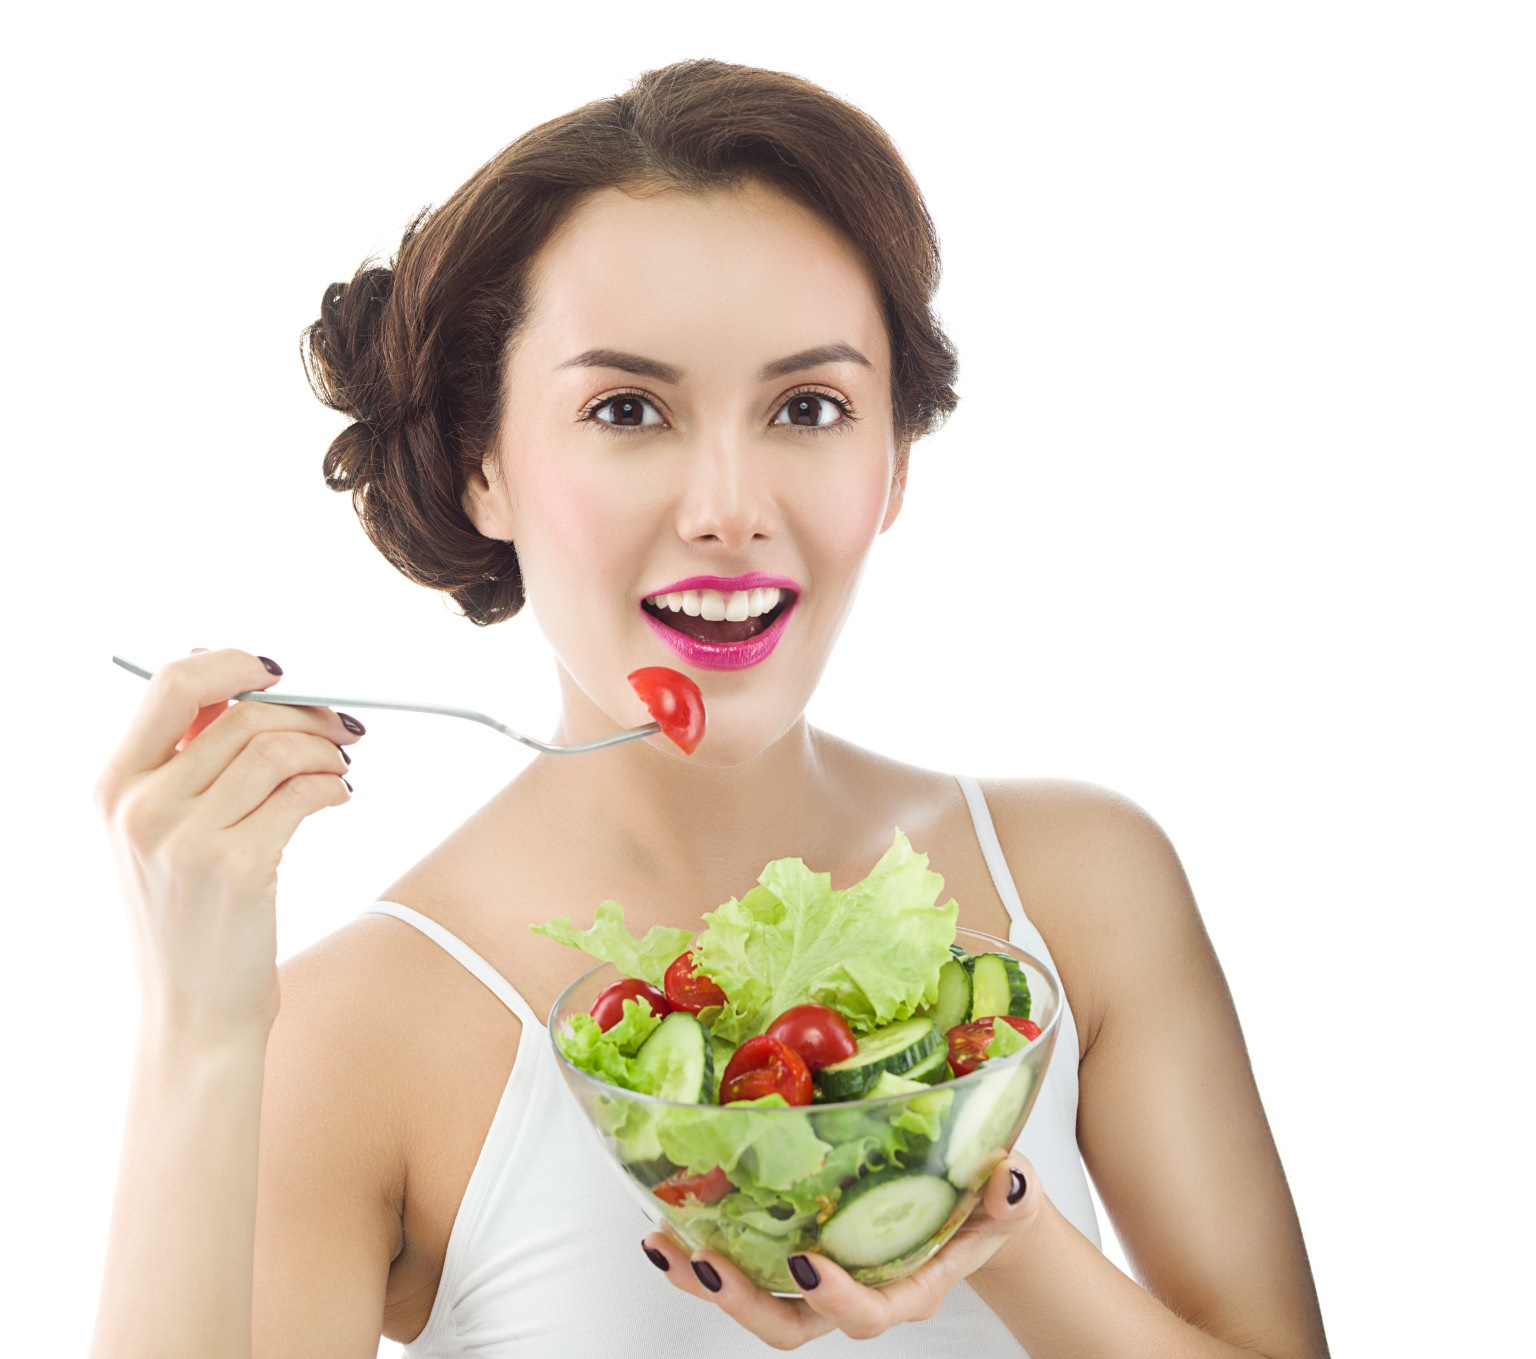 Does food items or eating some things helps in making the skin glow? If yes, what are they?